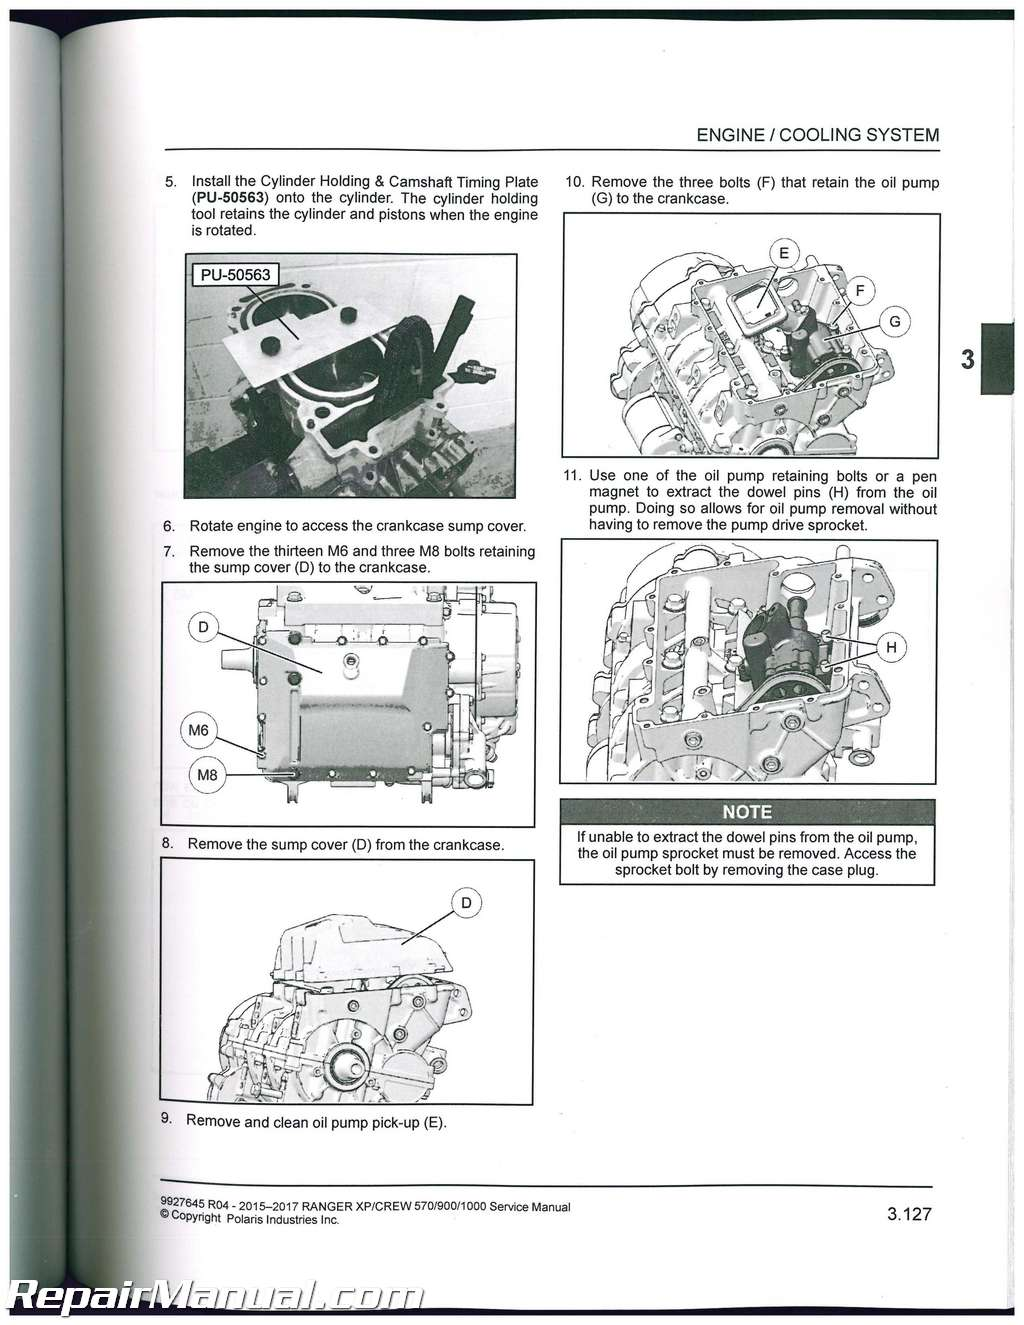 2012 Polaris Ranger Wiring Diagram Crew Free Picture 2015 2016 2017 Xp Xp570 900 1000 Side 800